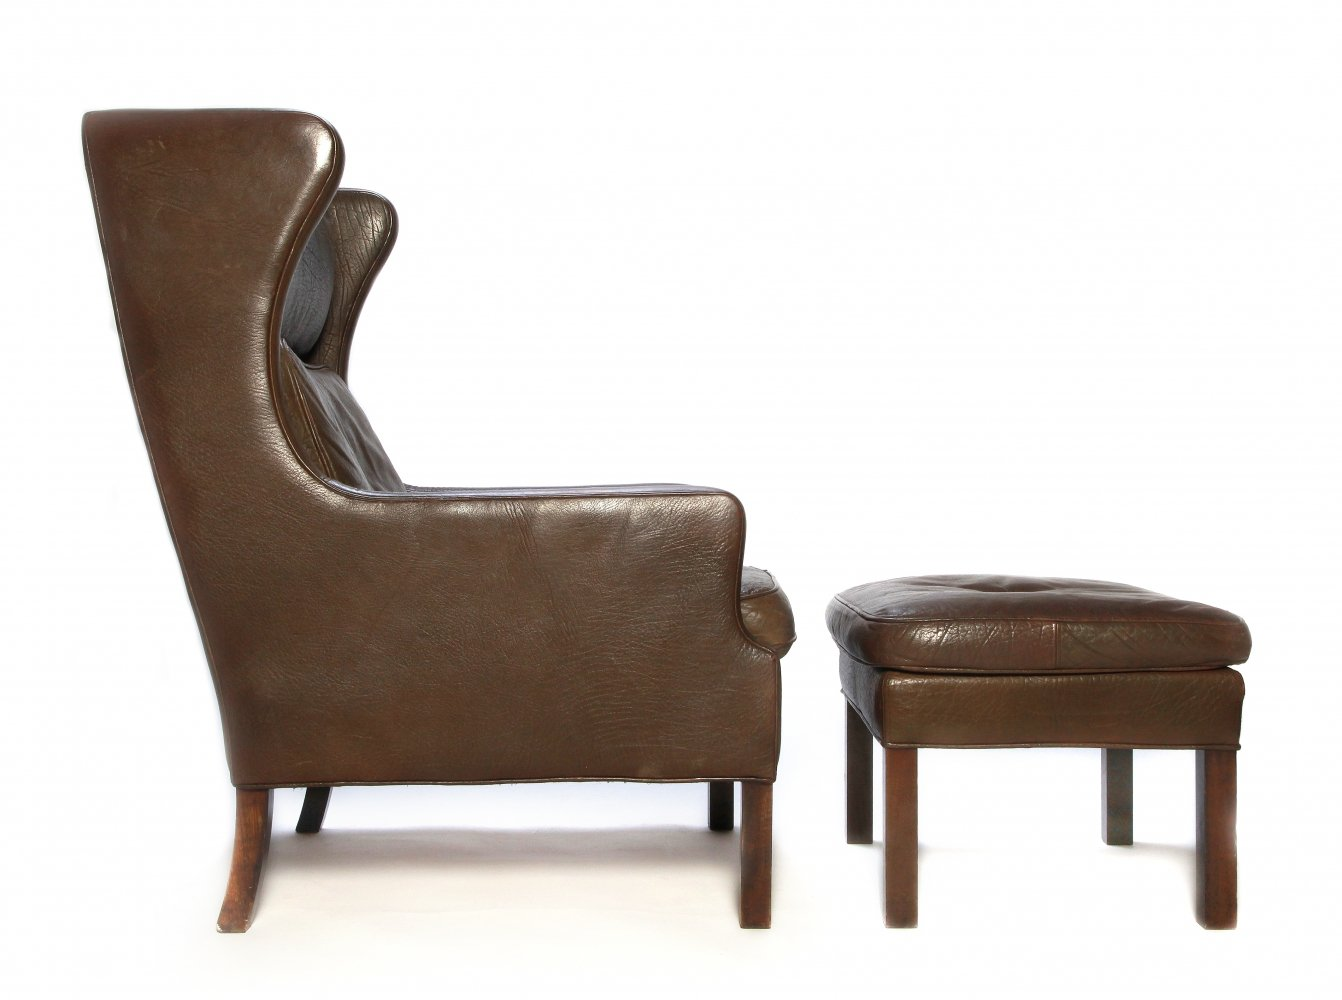 Stouby Denmark leather lounge chair with ottoman